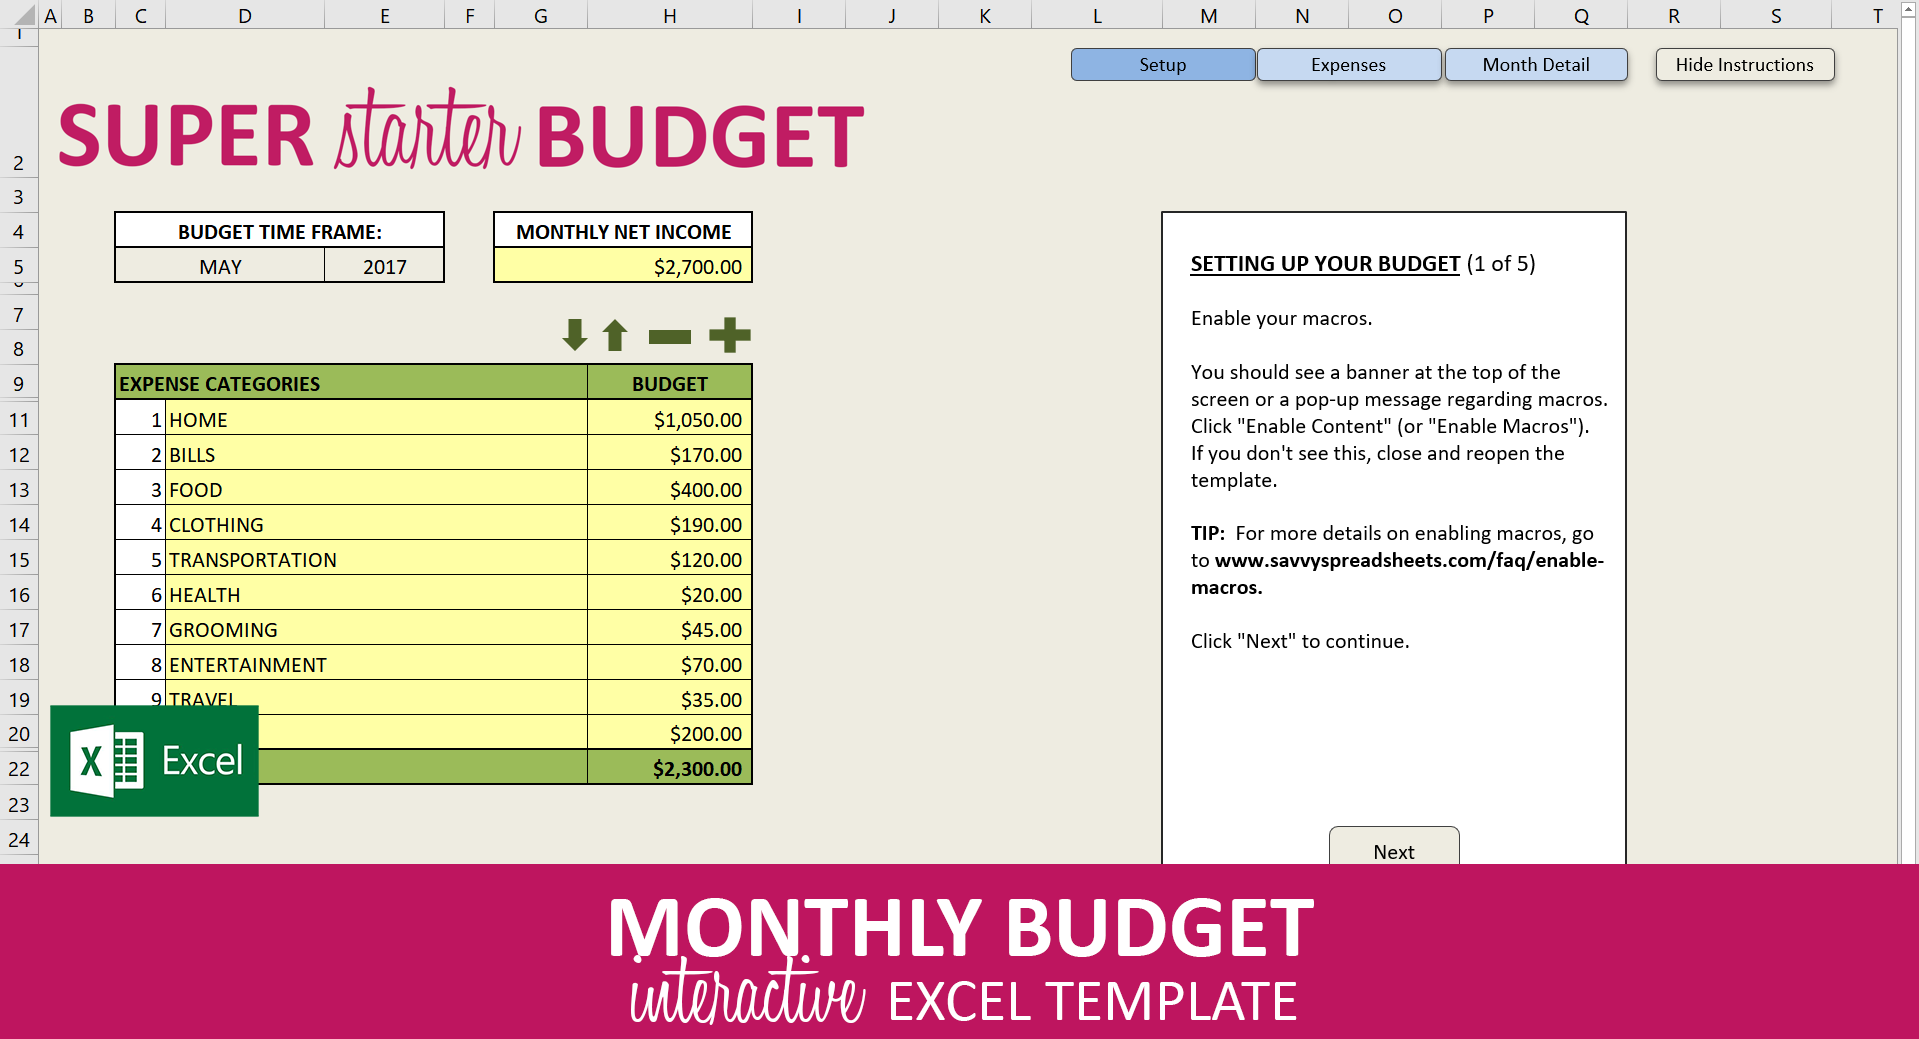 New Budget Spreadsheet Excel Template Exceltemplate Xls